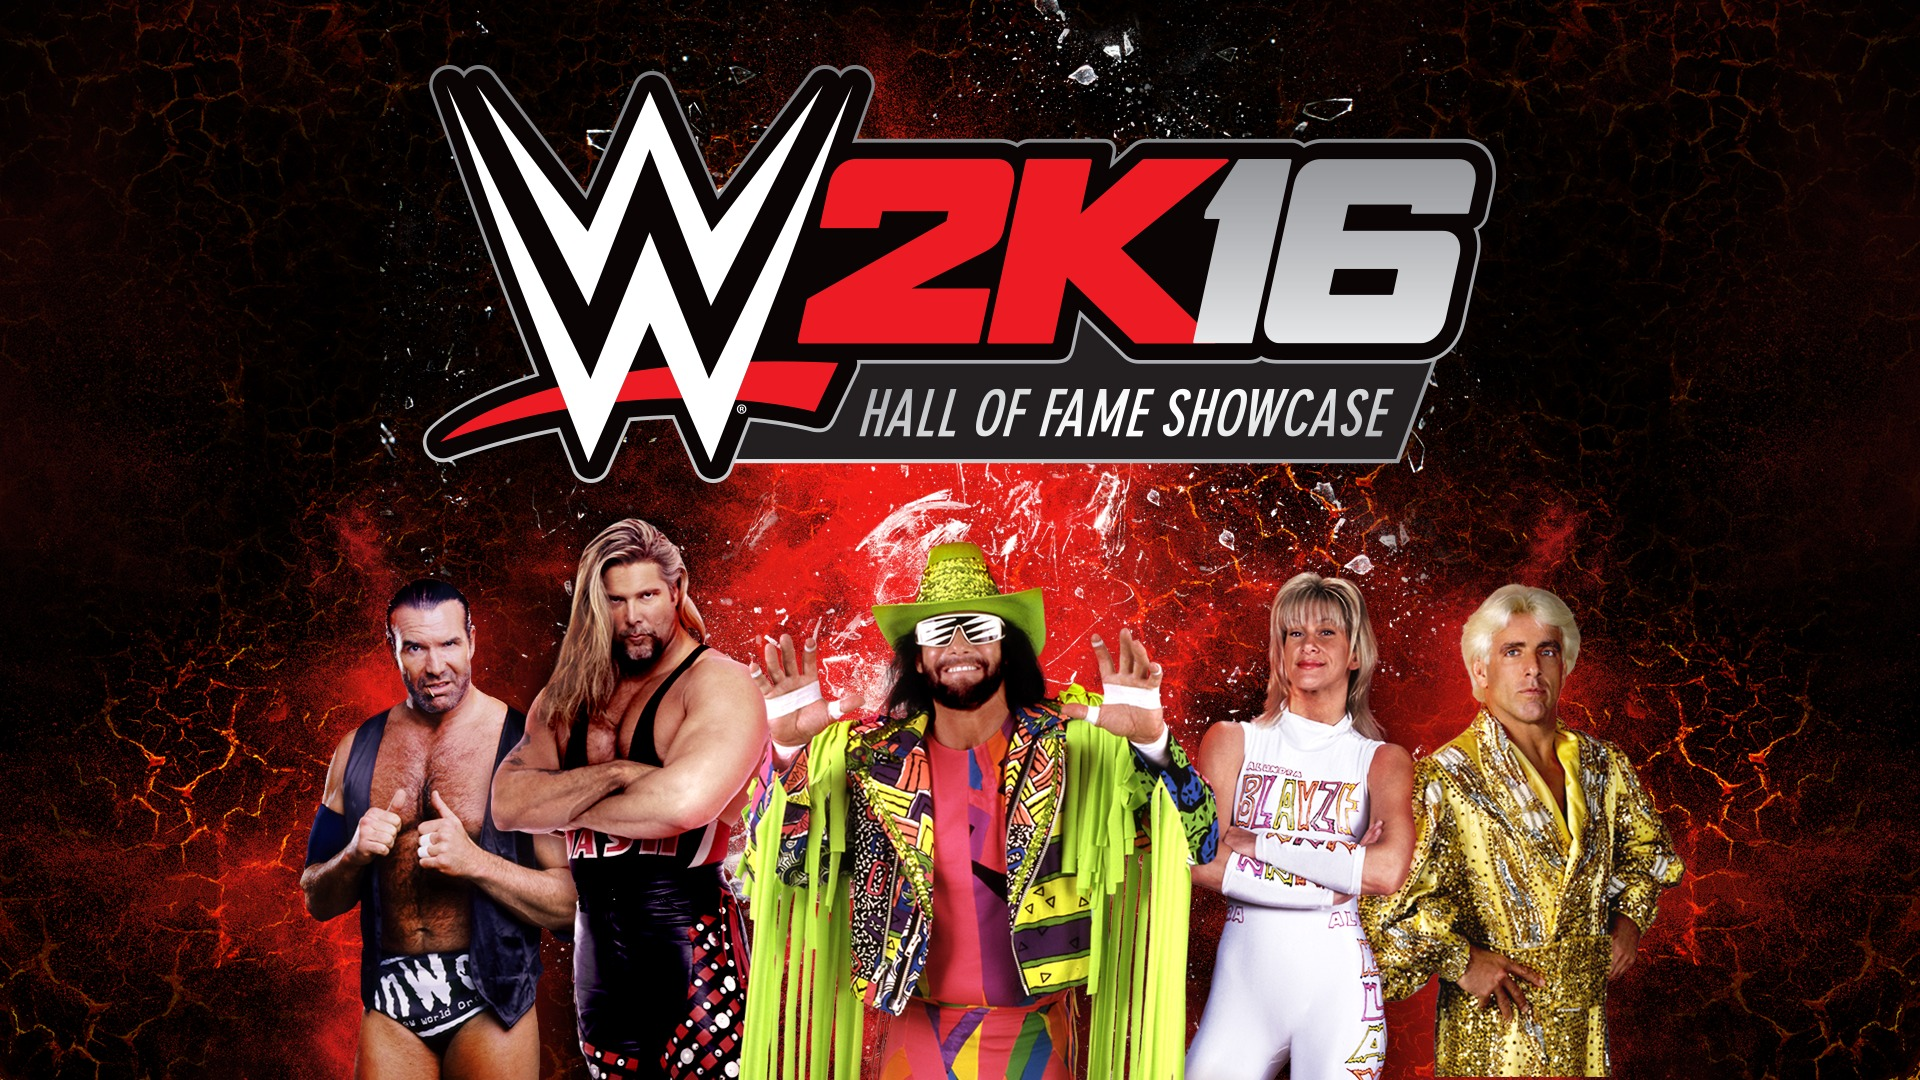 WWE 2K16 Hall of Fame Showcase DLC Release Date Revealed